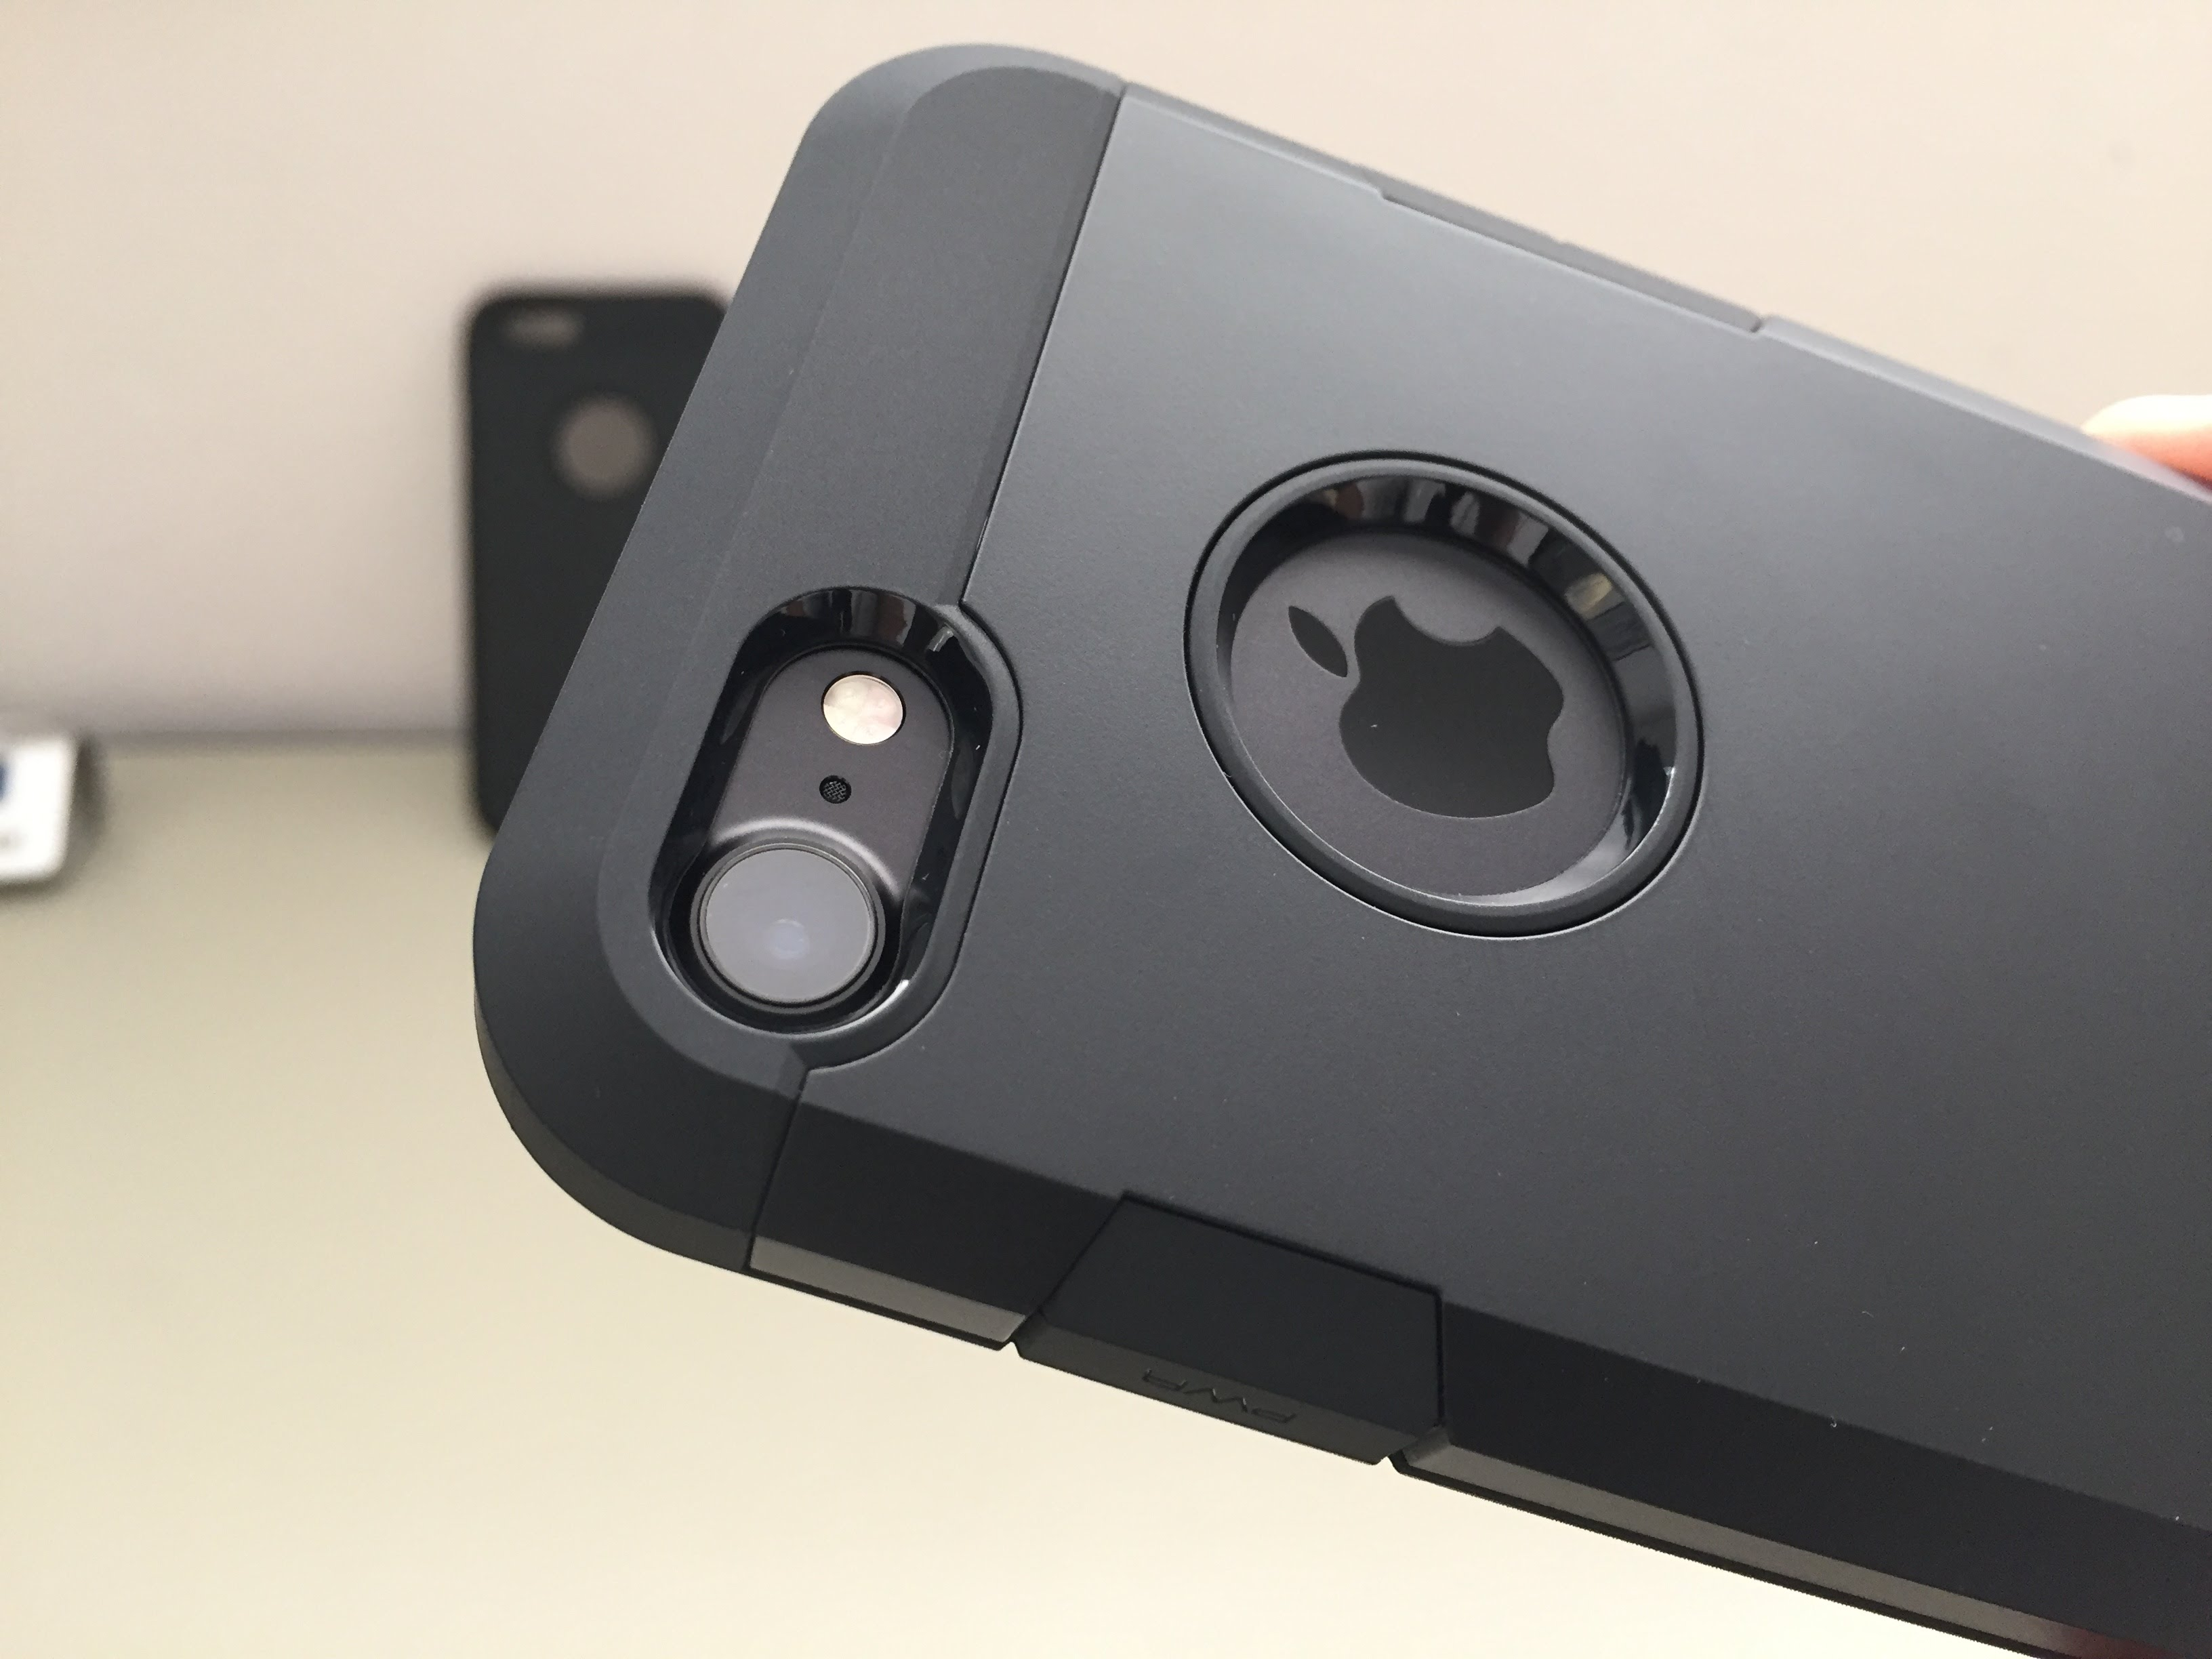 Spigen Tough Armor Iphone 8 Plus Case Review